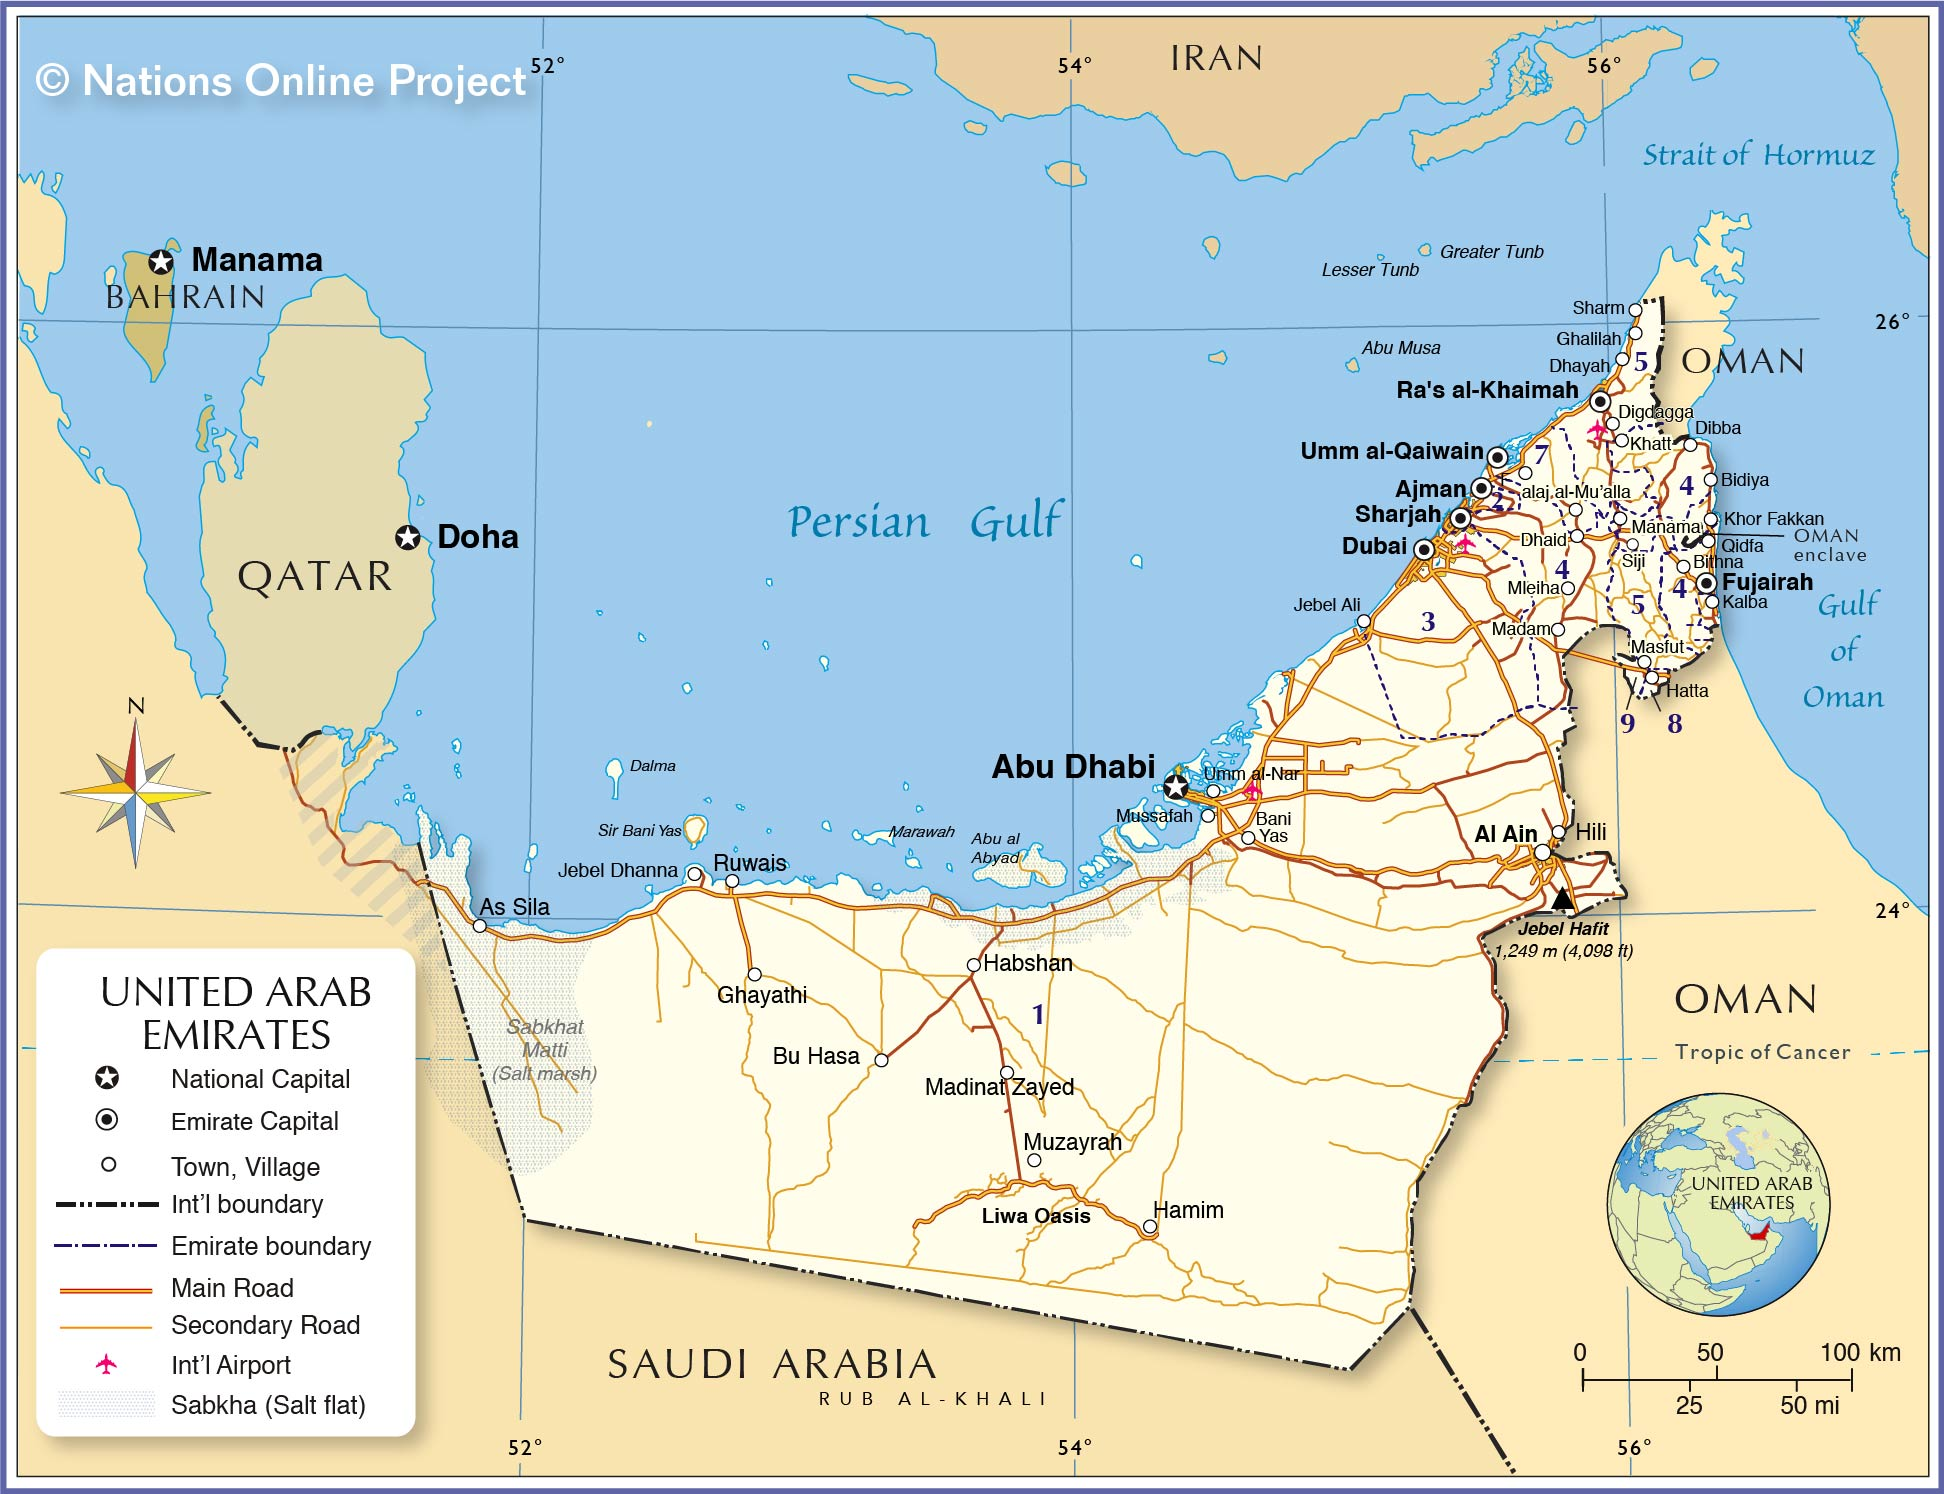 Political Map of United Arab Emirates - Nations Online Project